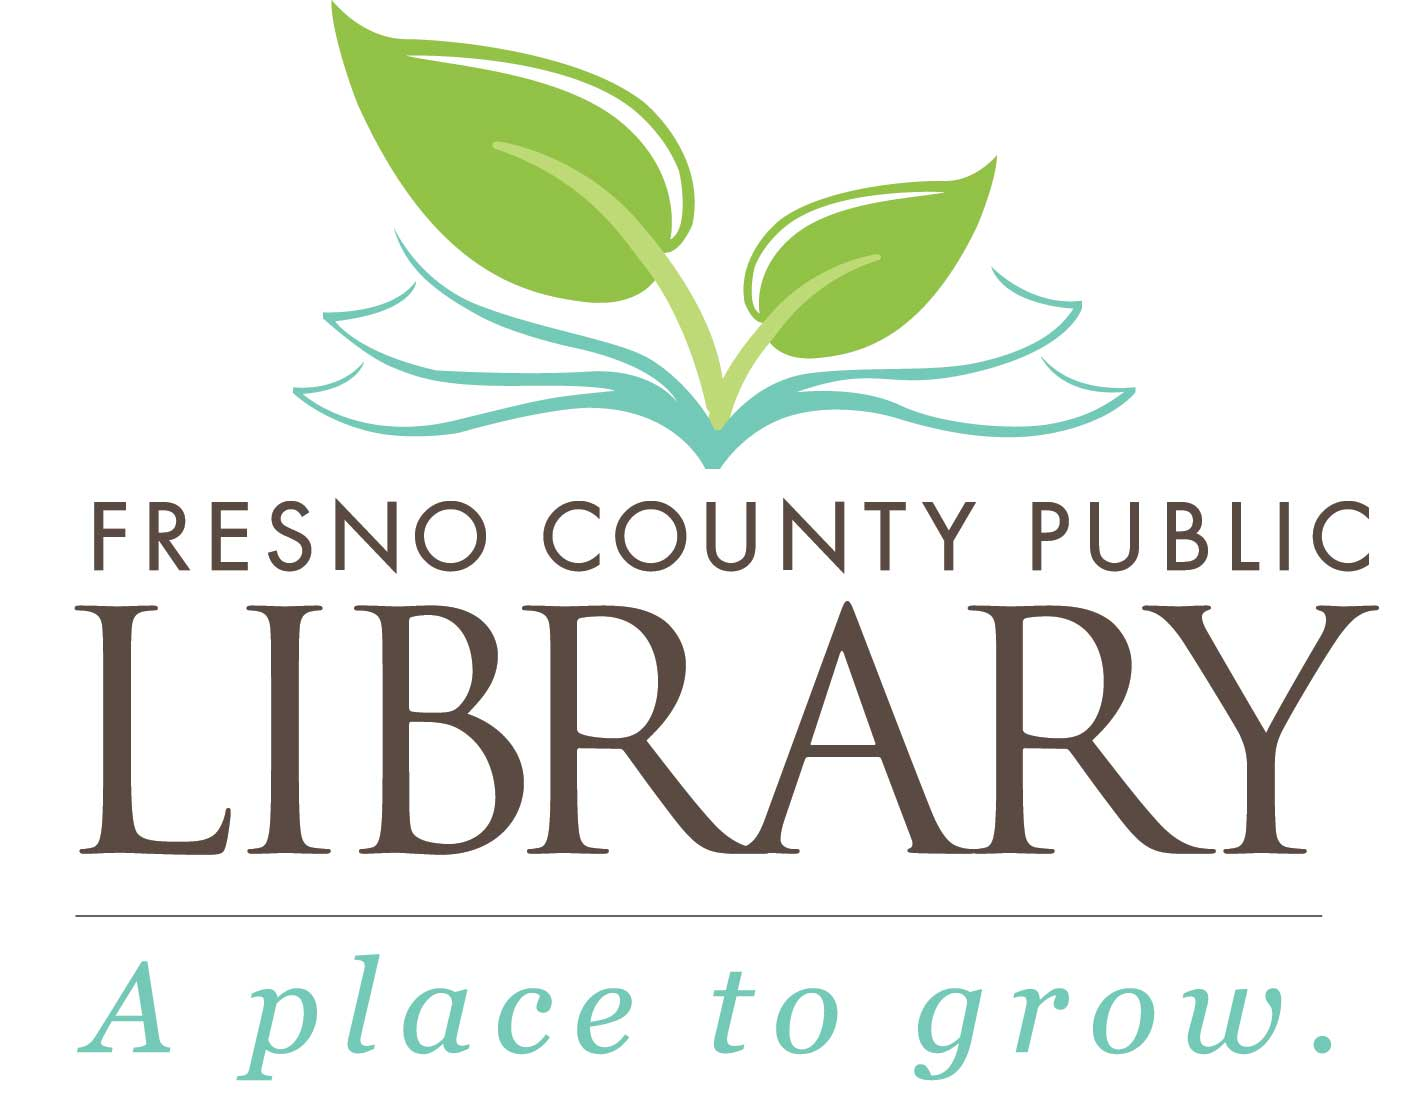 Fresno County Library